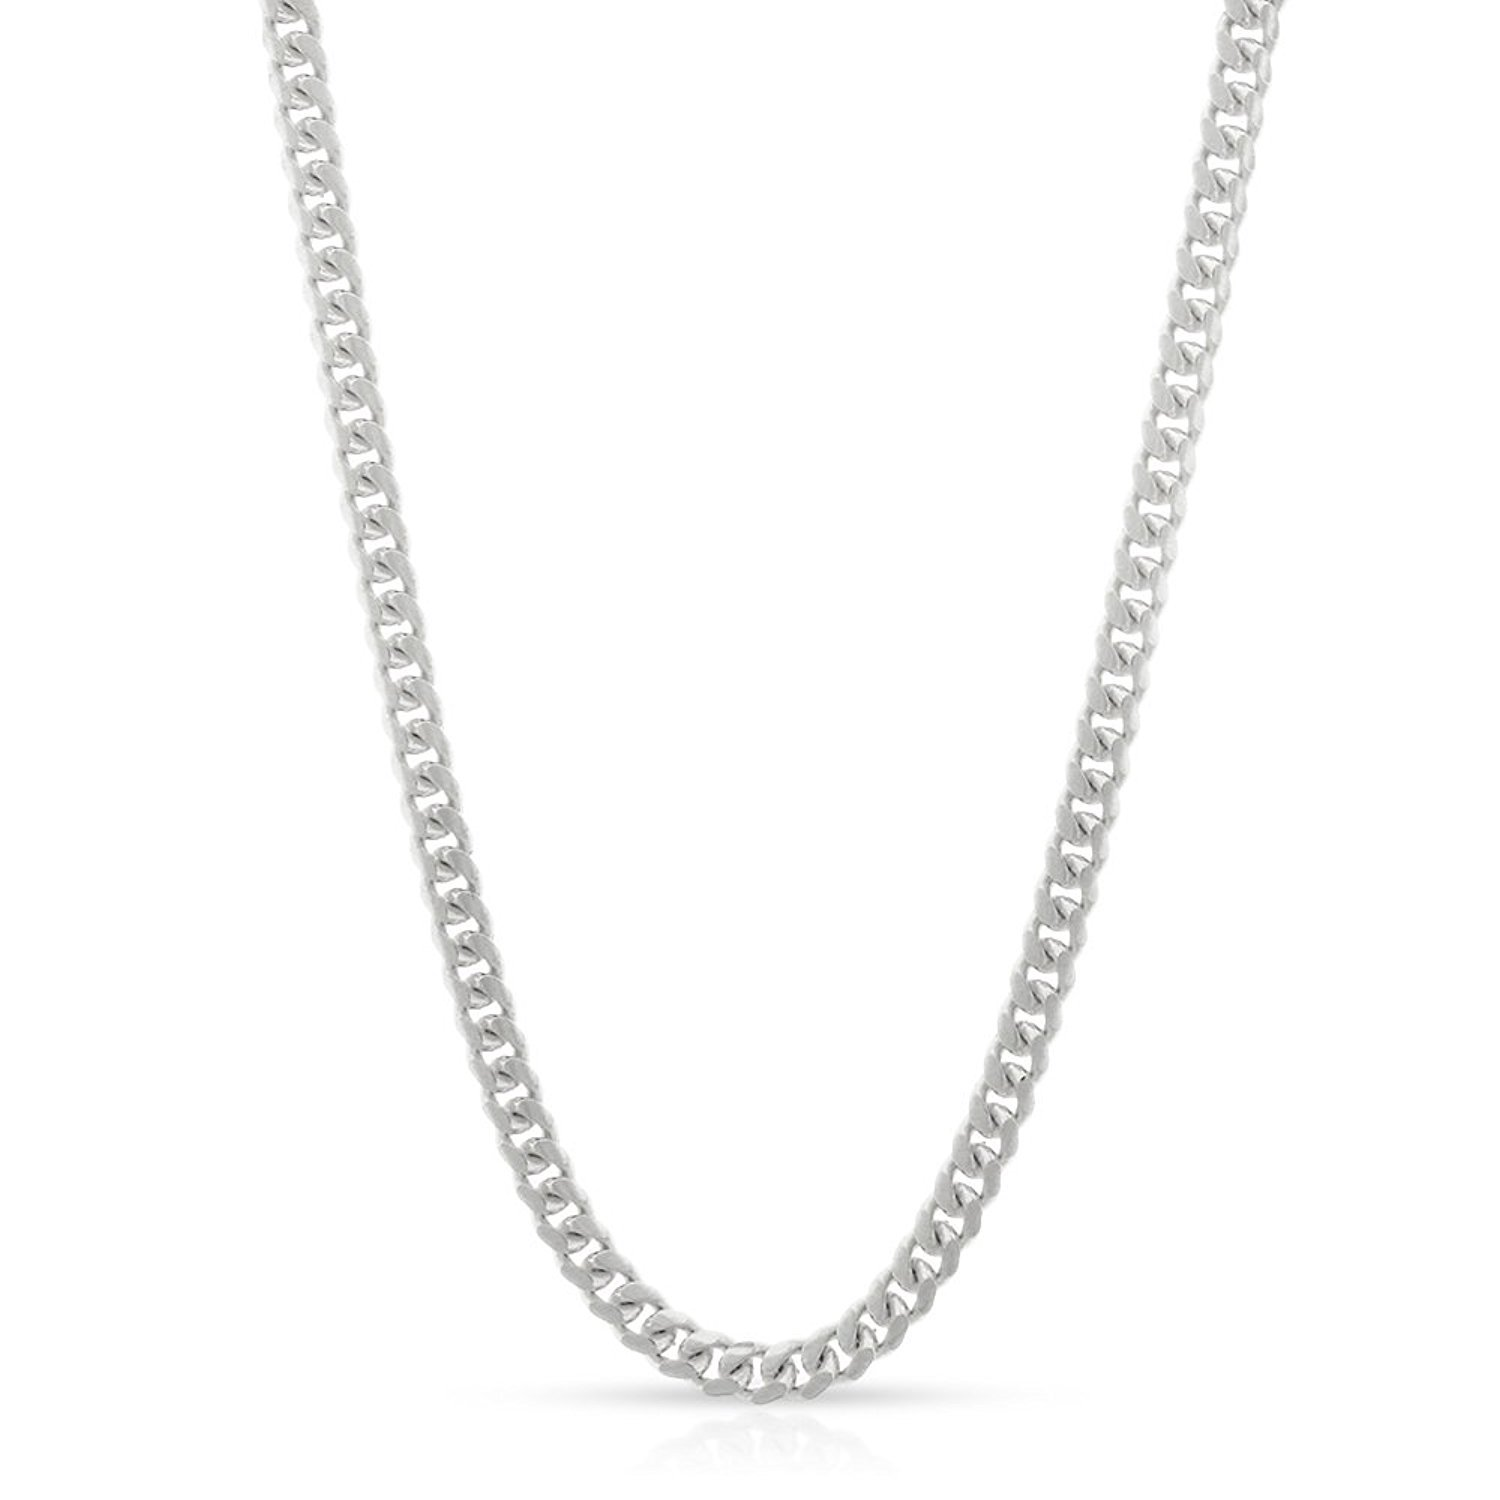 14k White Gold 2.5mm Solid Miami Cuban Curb Link Thick Necklace Chain 16'' - 30'' (22)